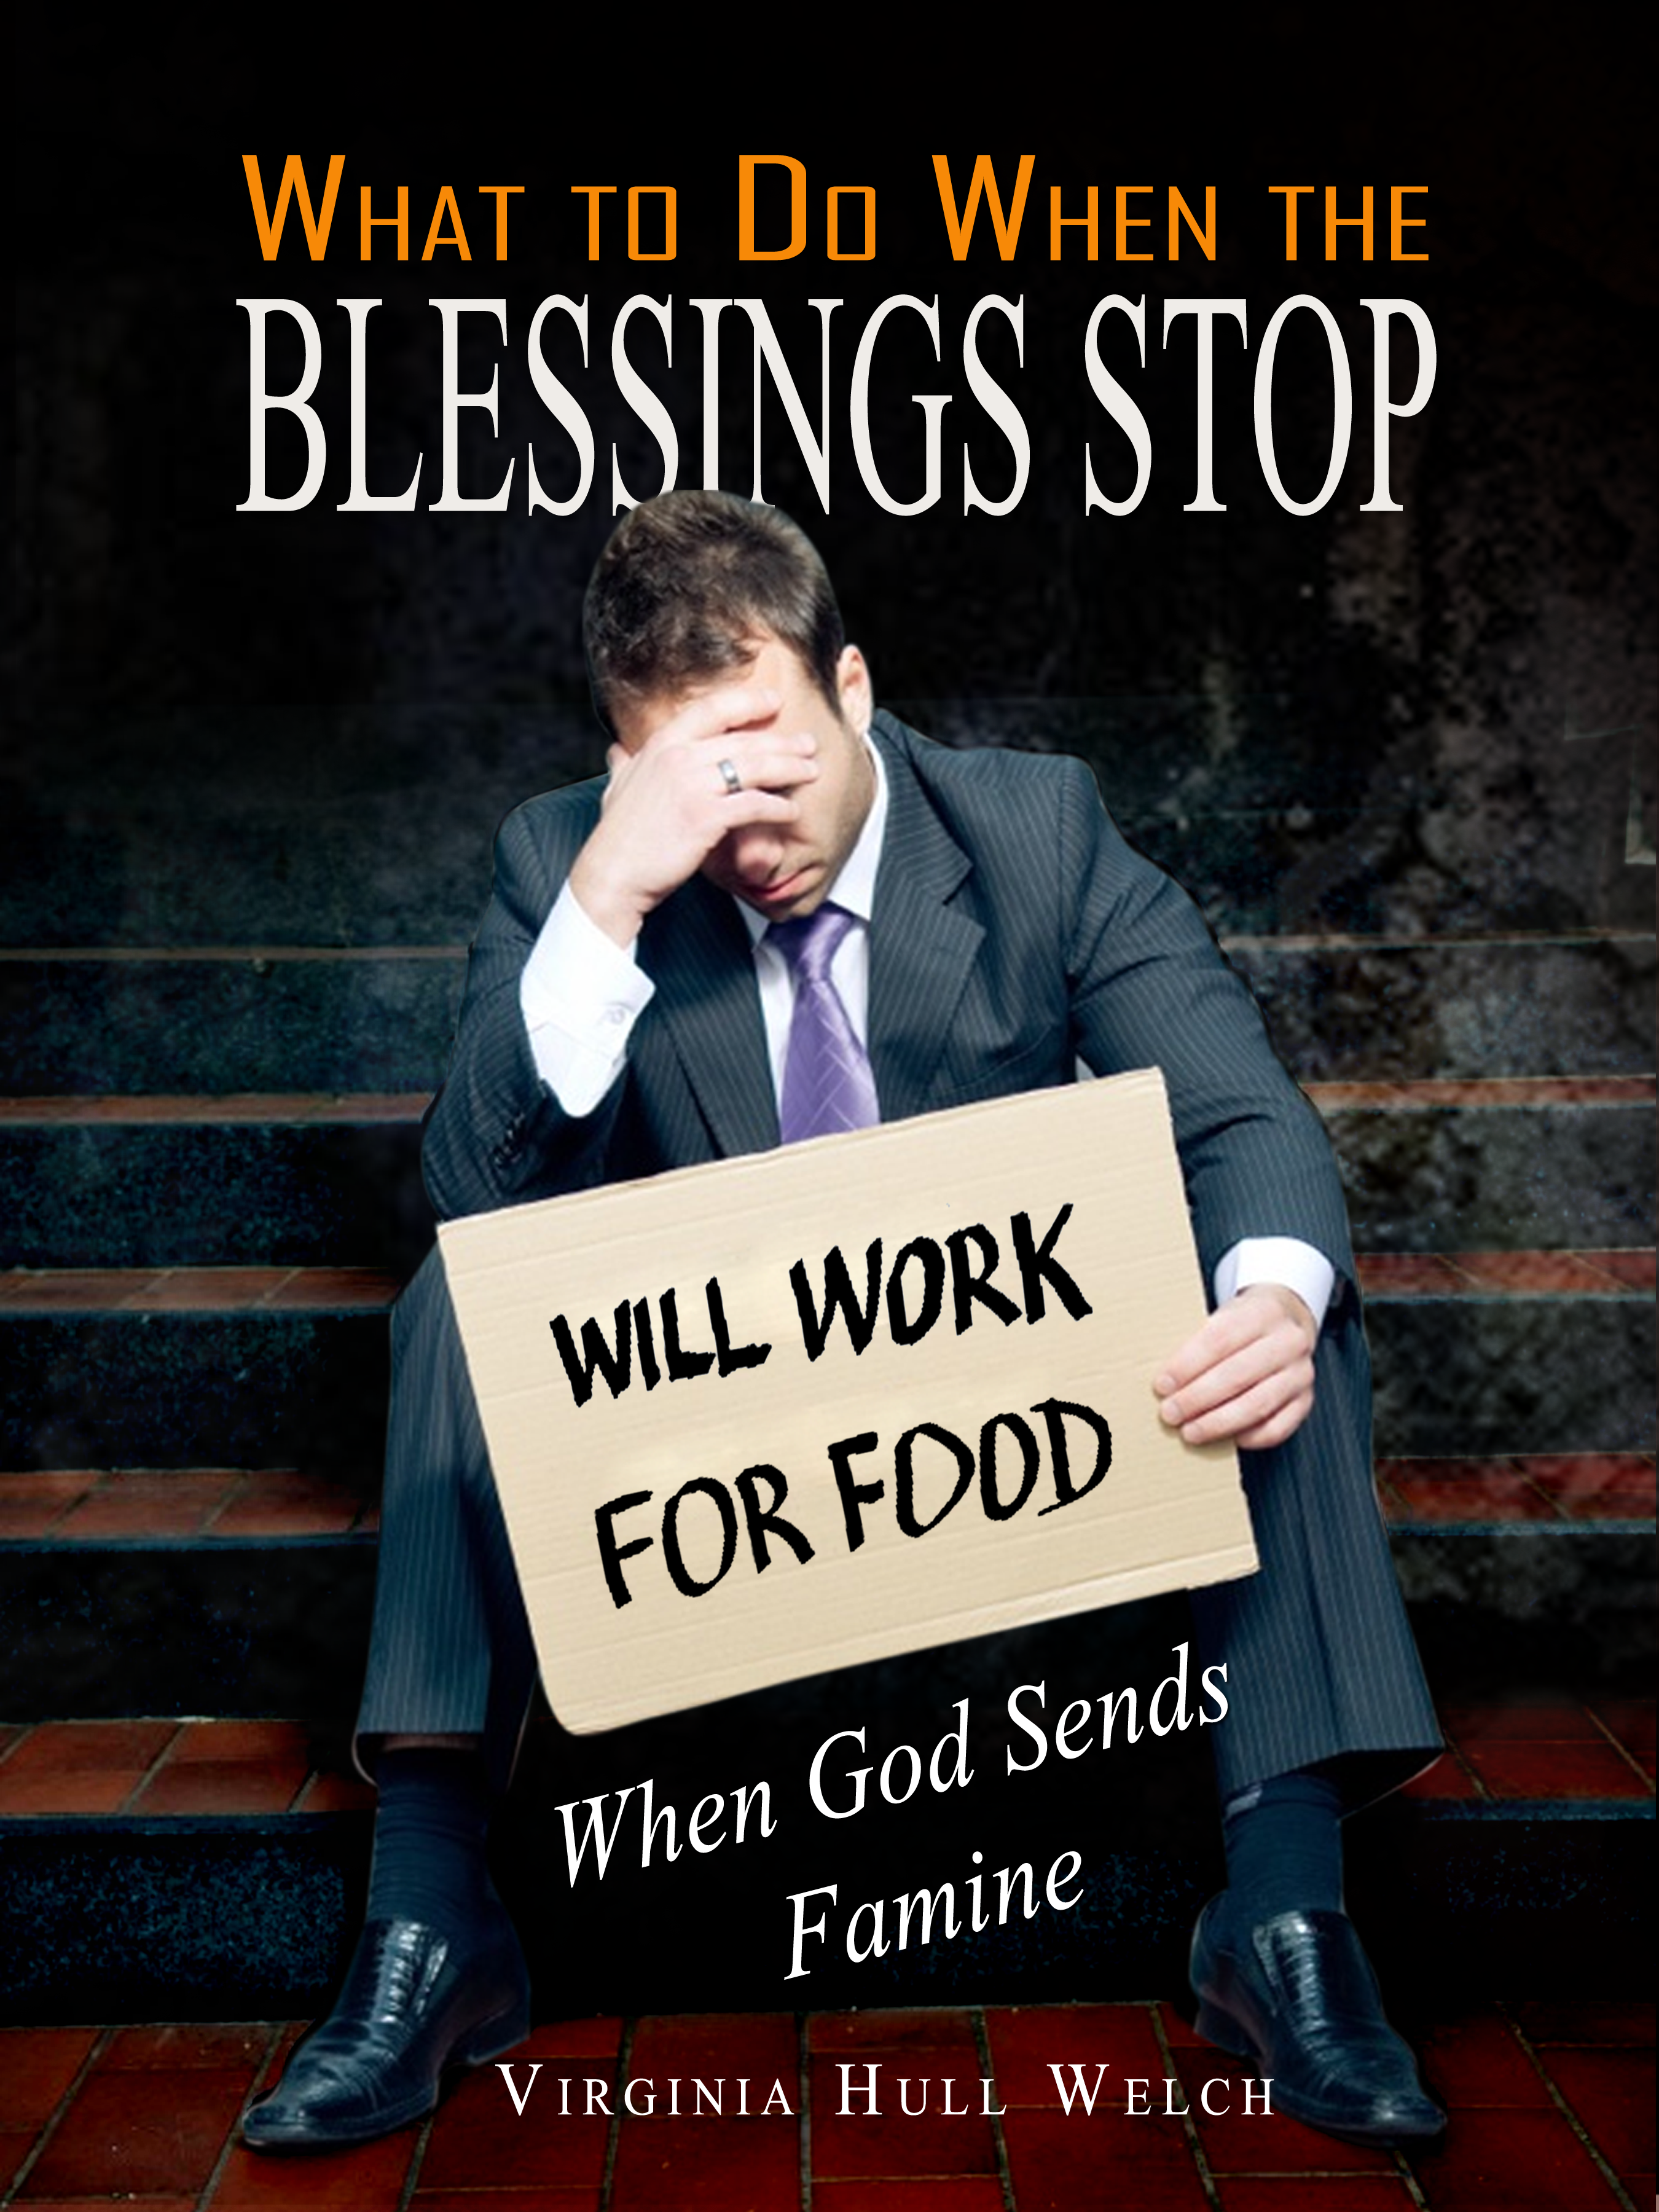 What To Do When The Blessings Stop - Virginia Hull Welch